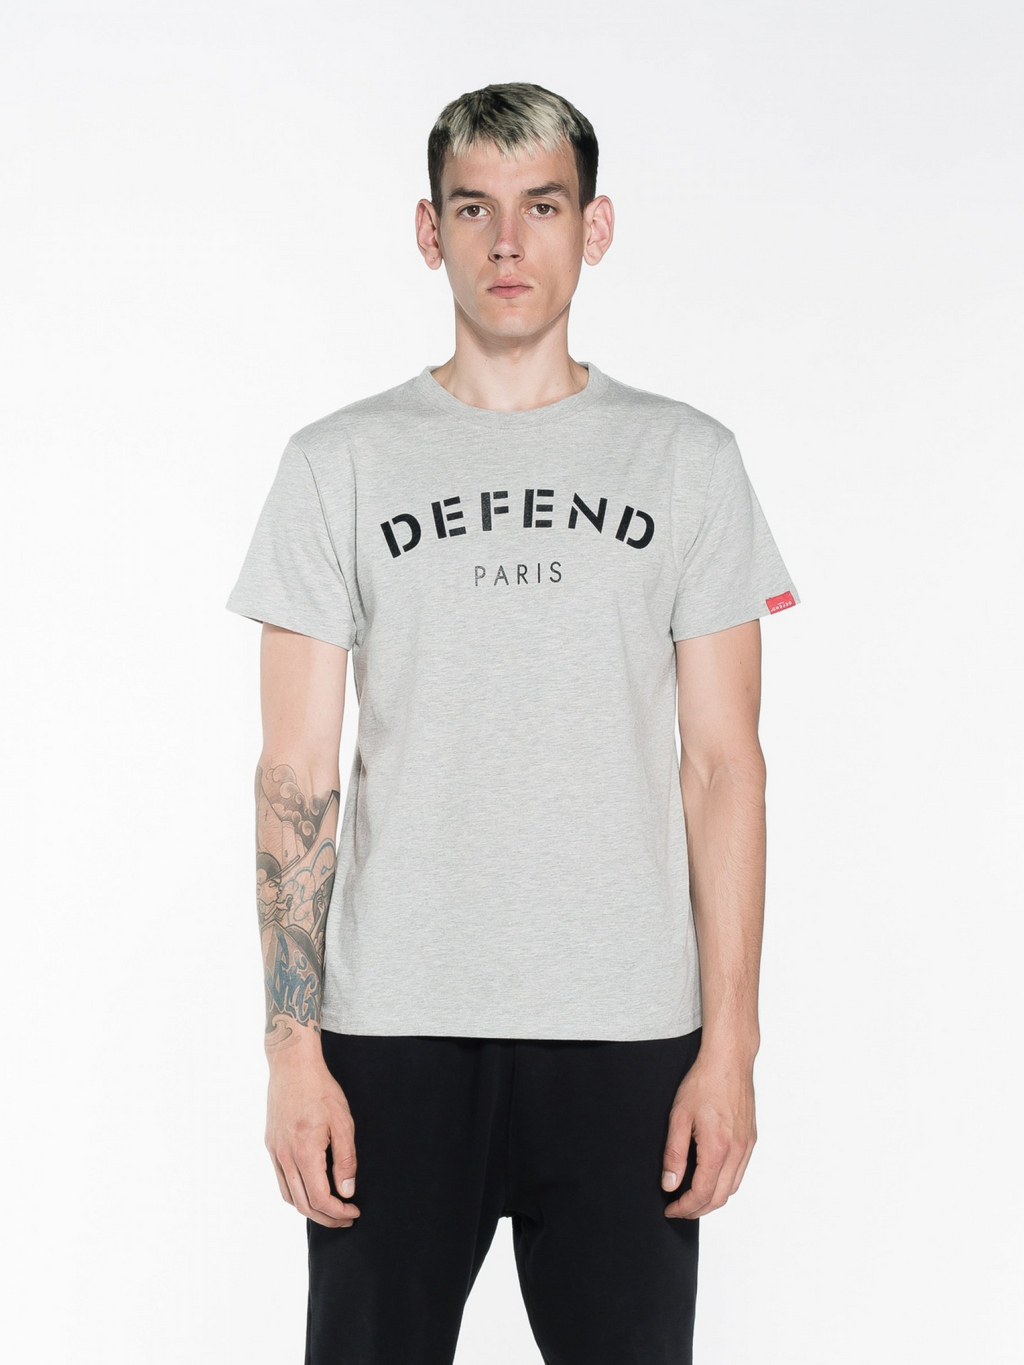 Defend Paris Defend Tee - This Is For Him